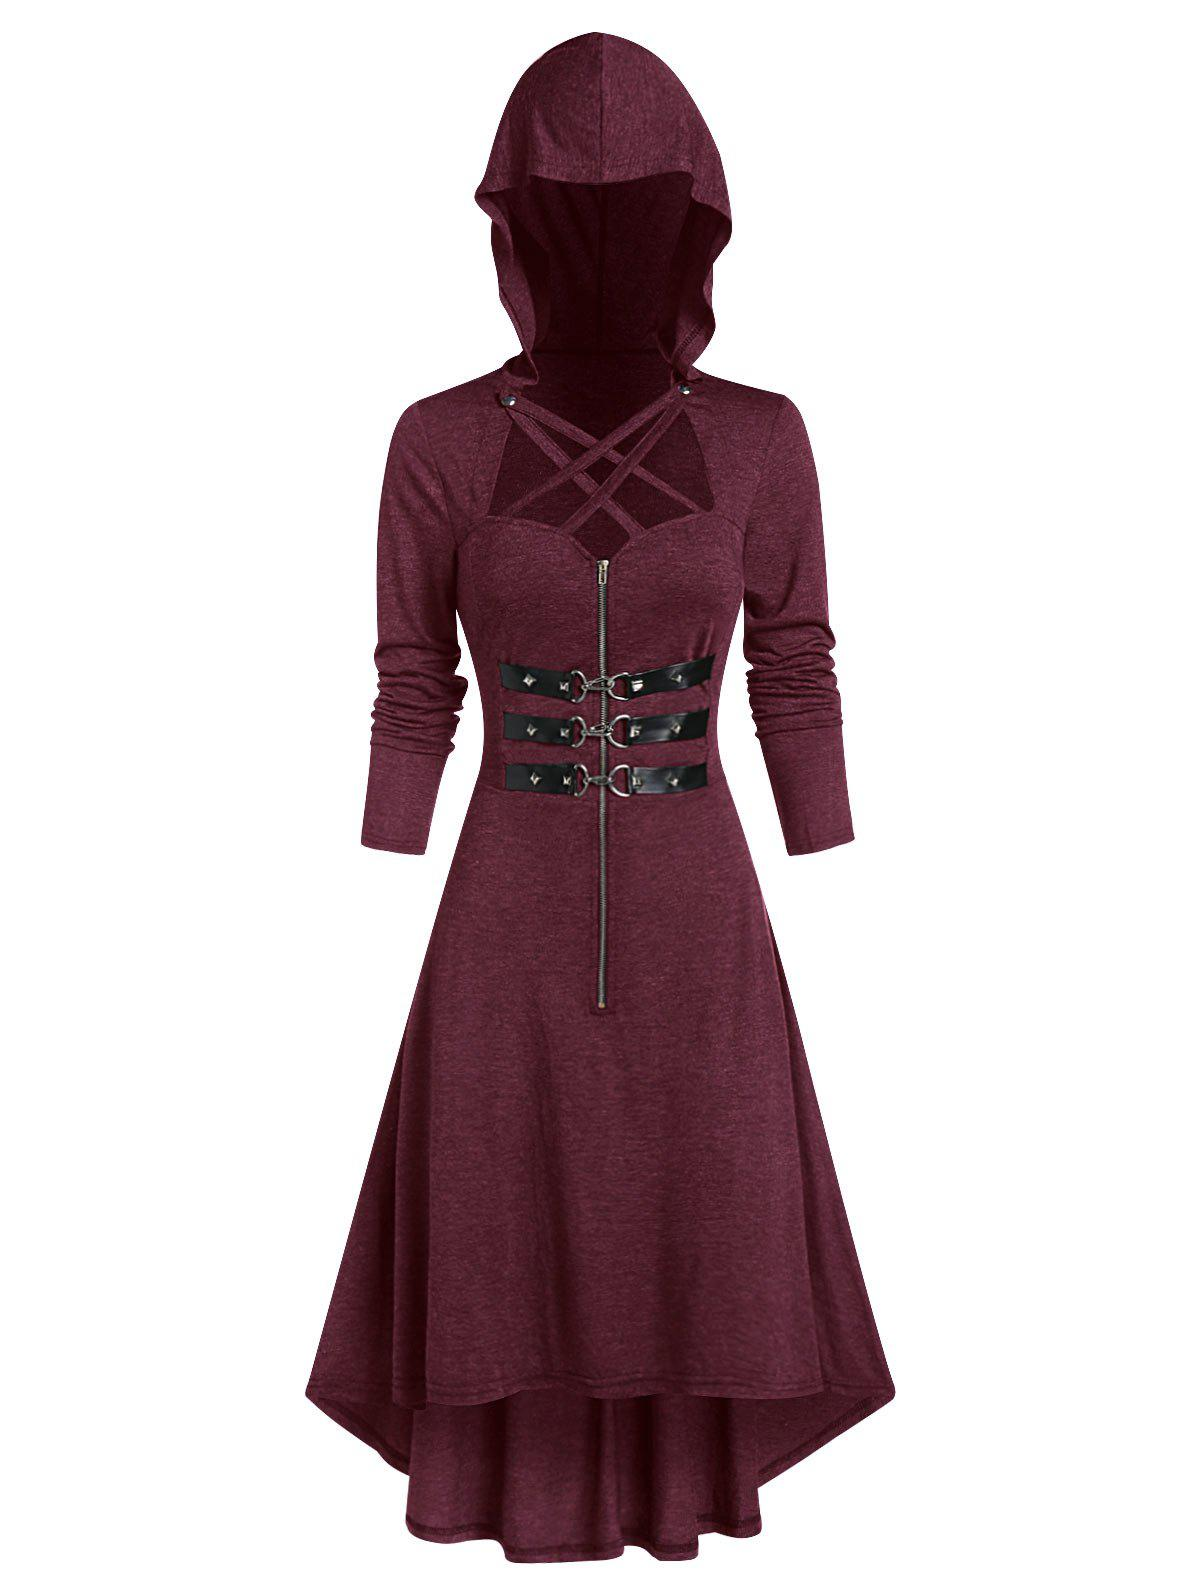 Unique Hooded Strappy Lobster Buckle Strap High Low Gothic Dress